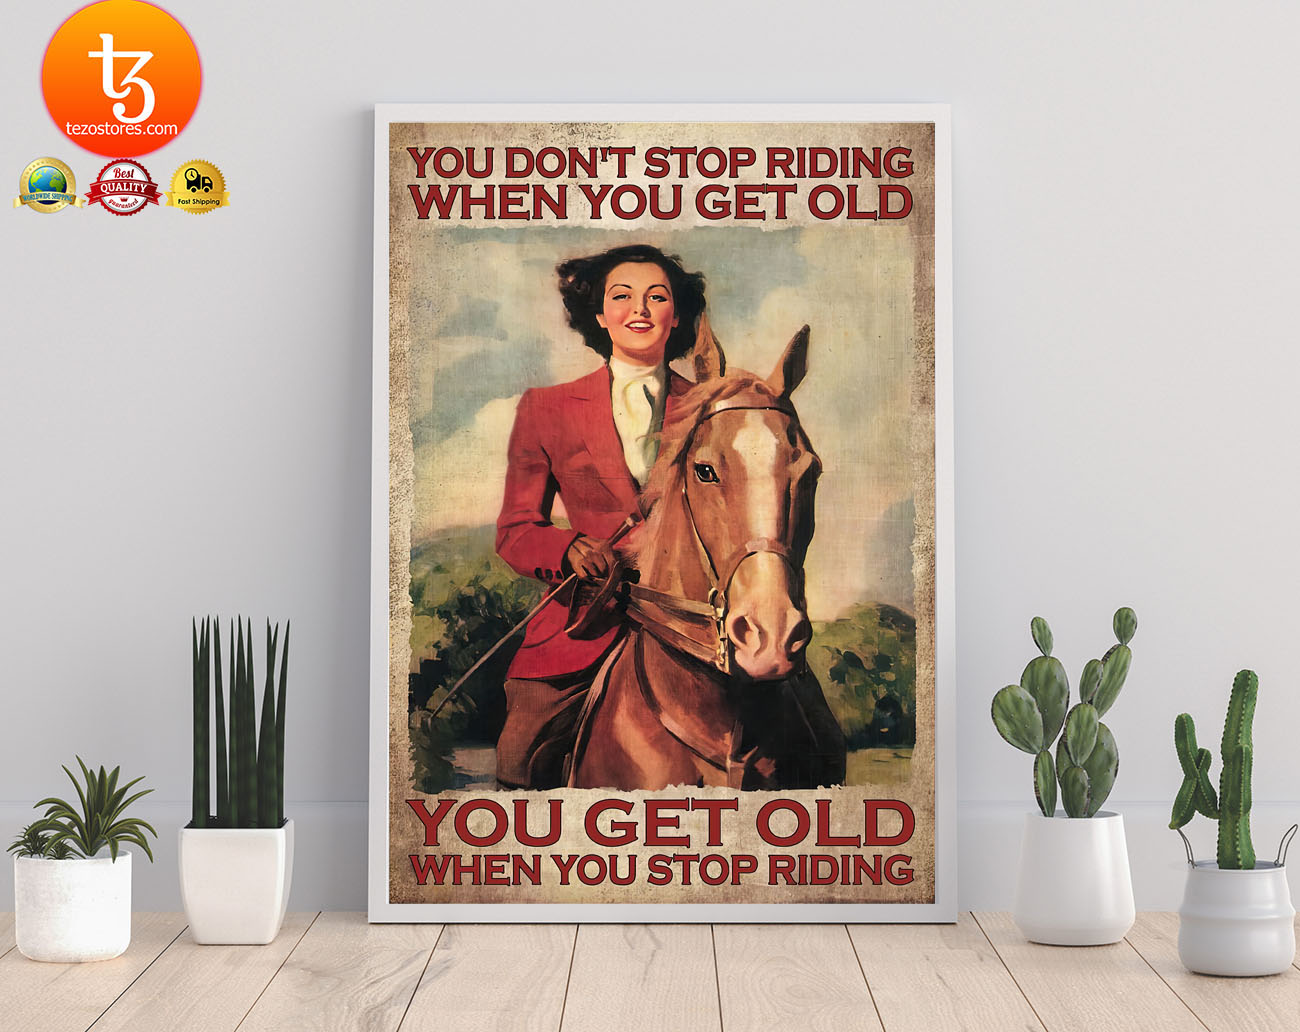 You dont stop riding when you get old poster2